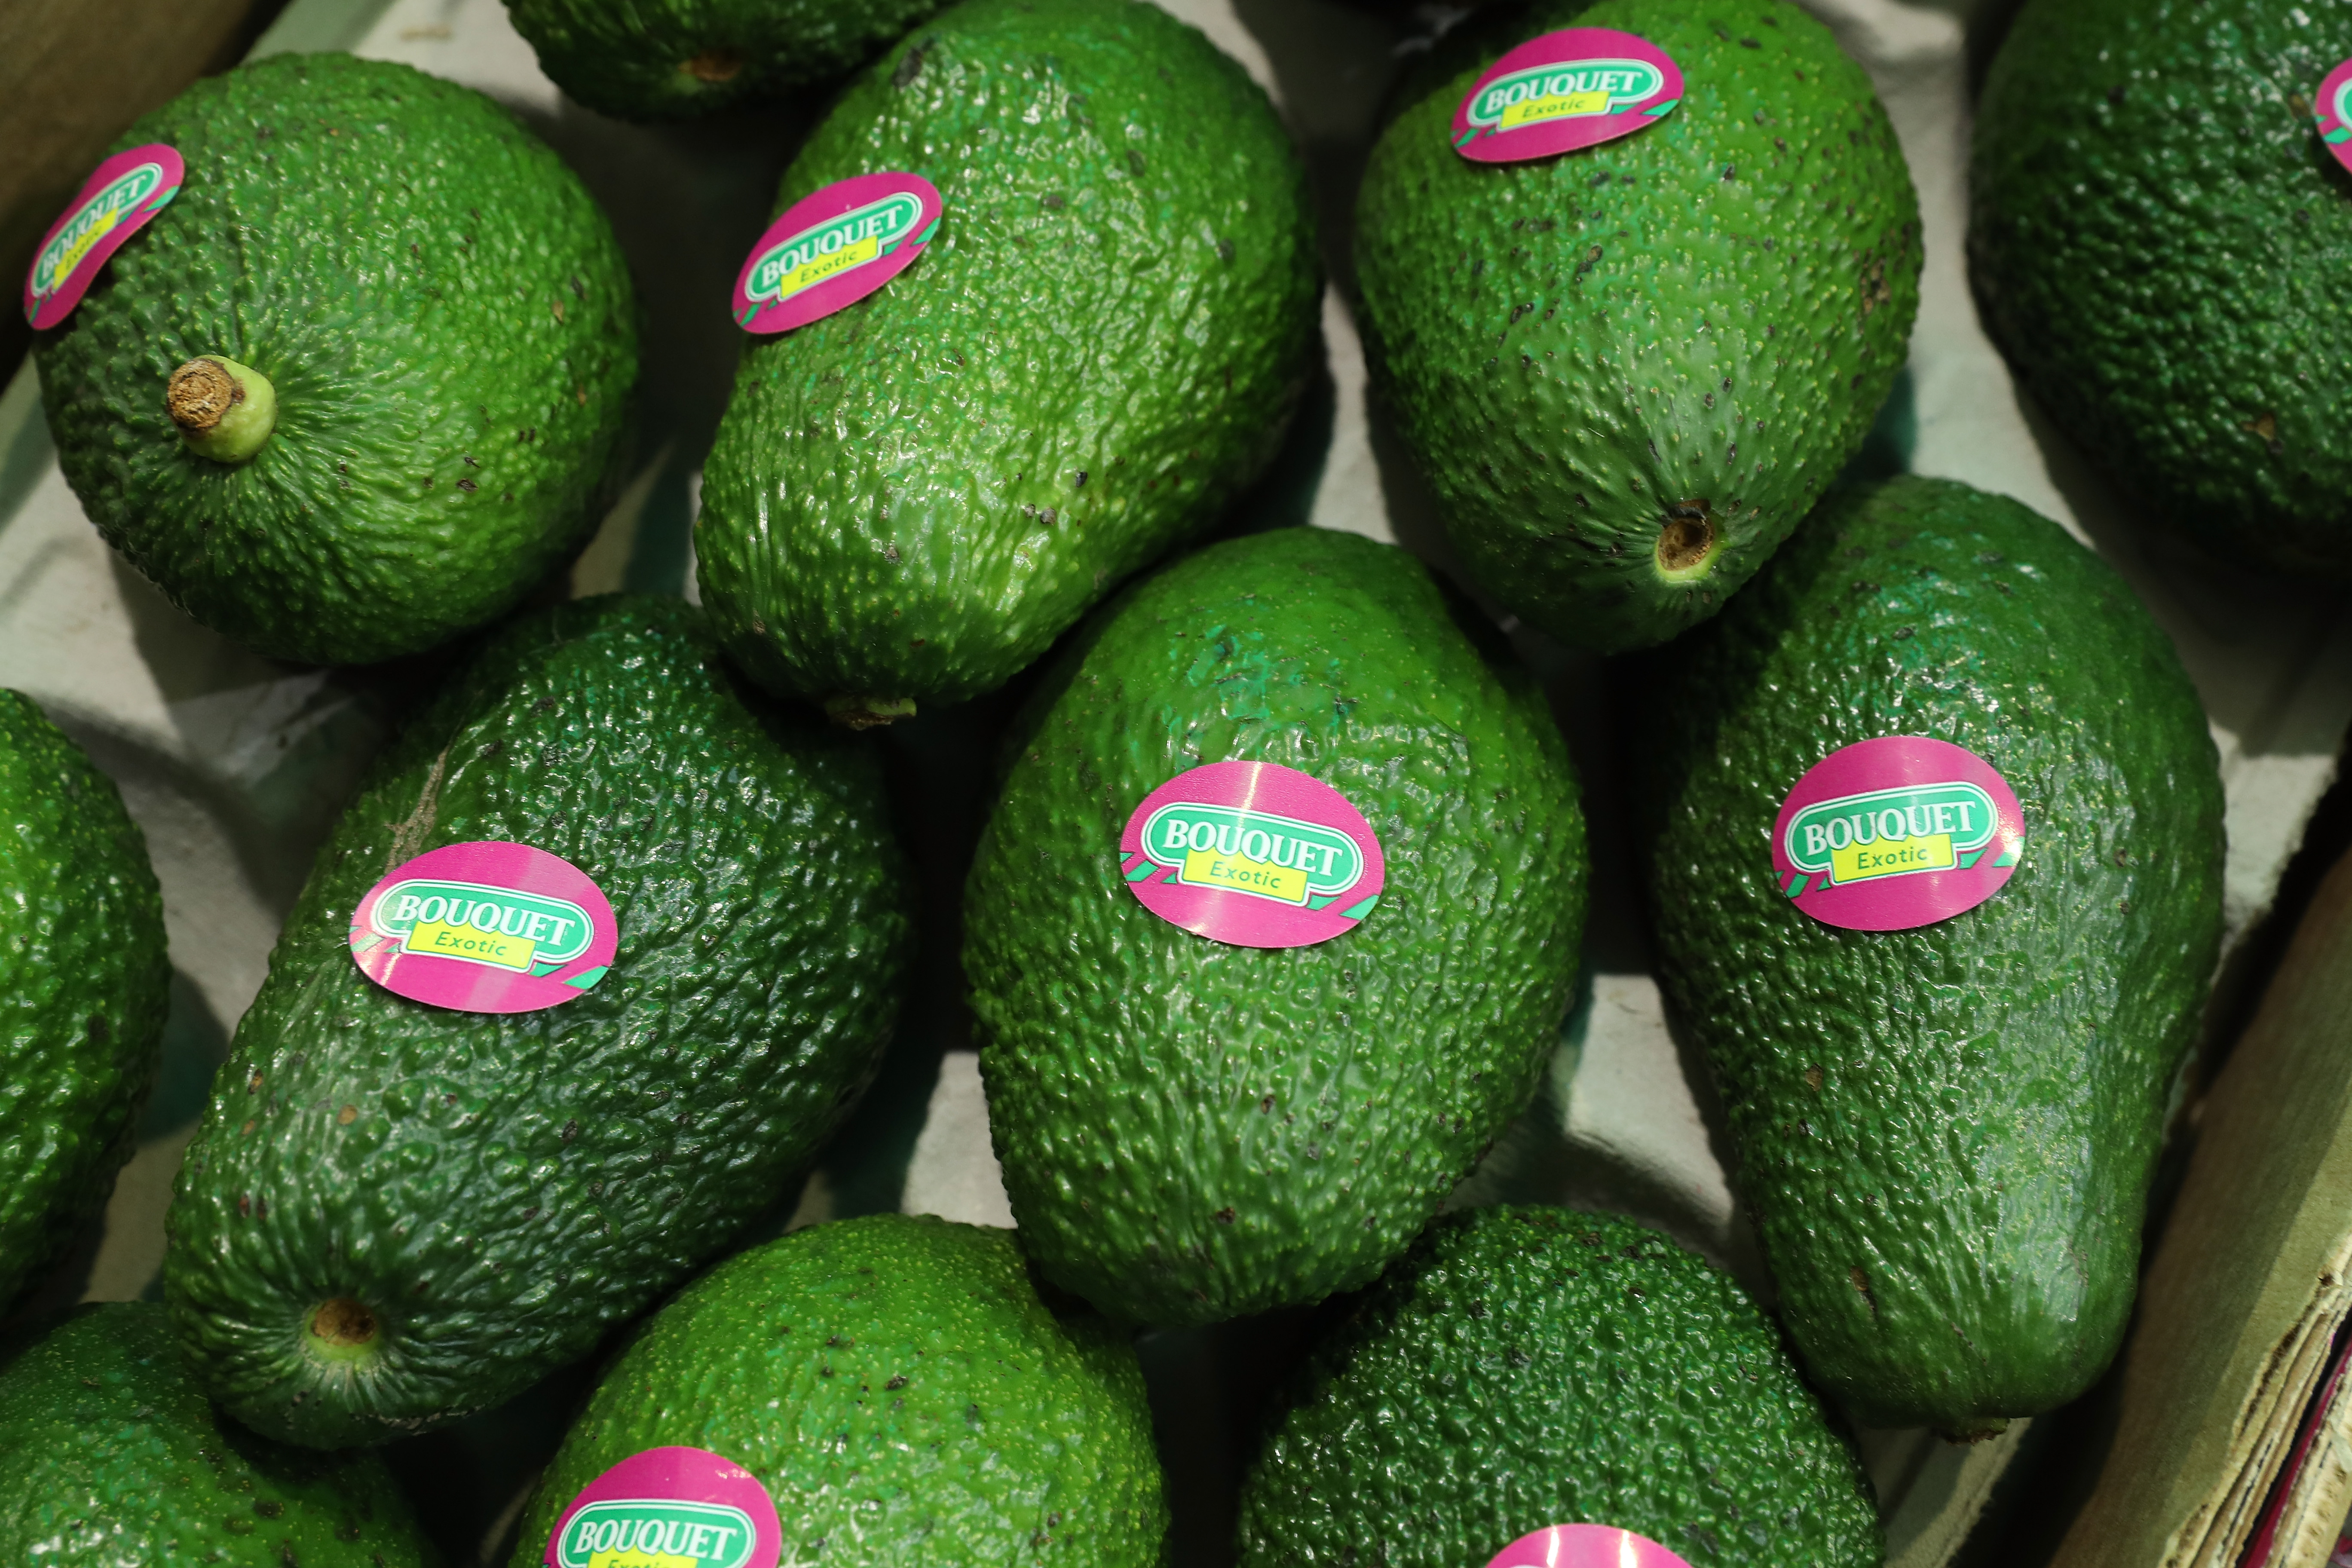 How to determine the ripeness of avocados in the store 25